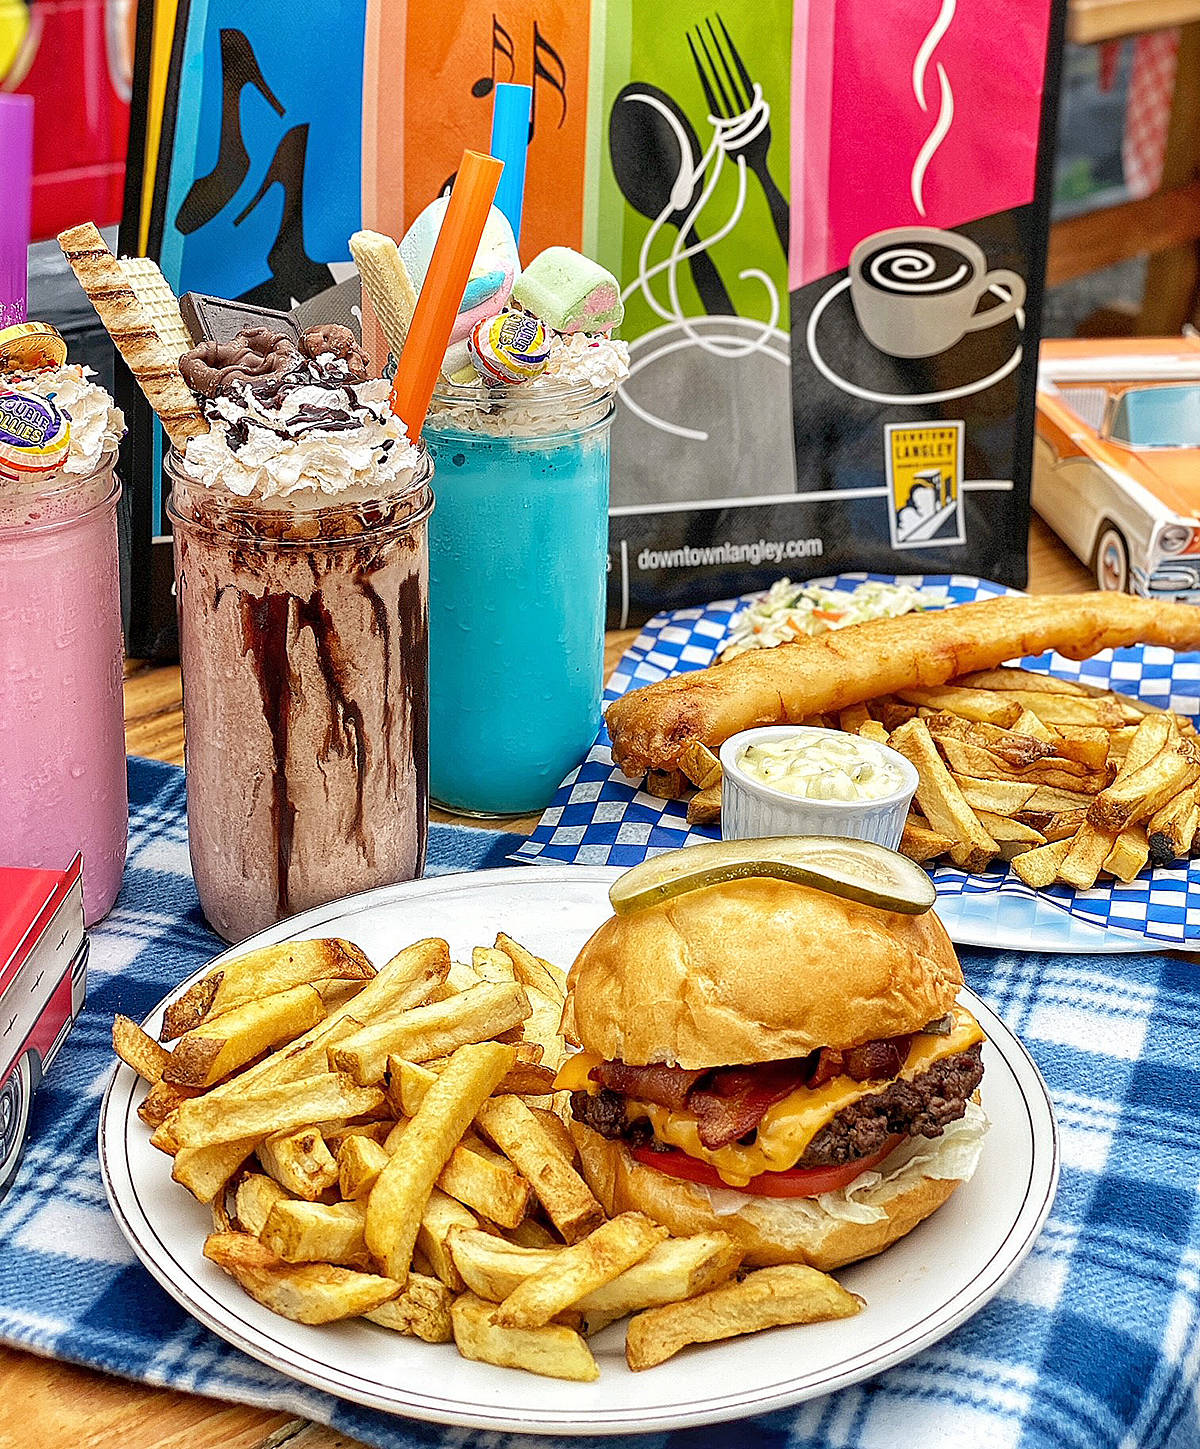 Brogan's Diner was one of the participating restaurants that took part in the Pick Up Picnic campaign in Langley City this summer. (Special to Langley Advance Times)